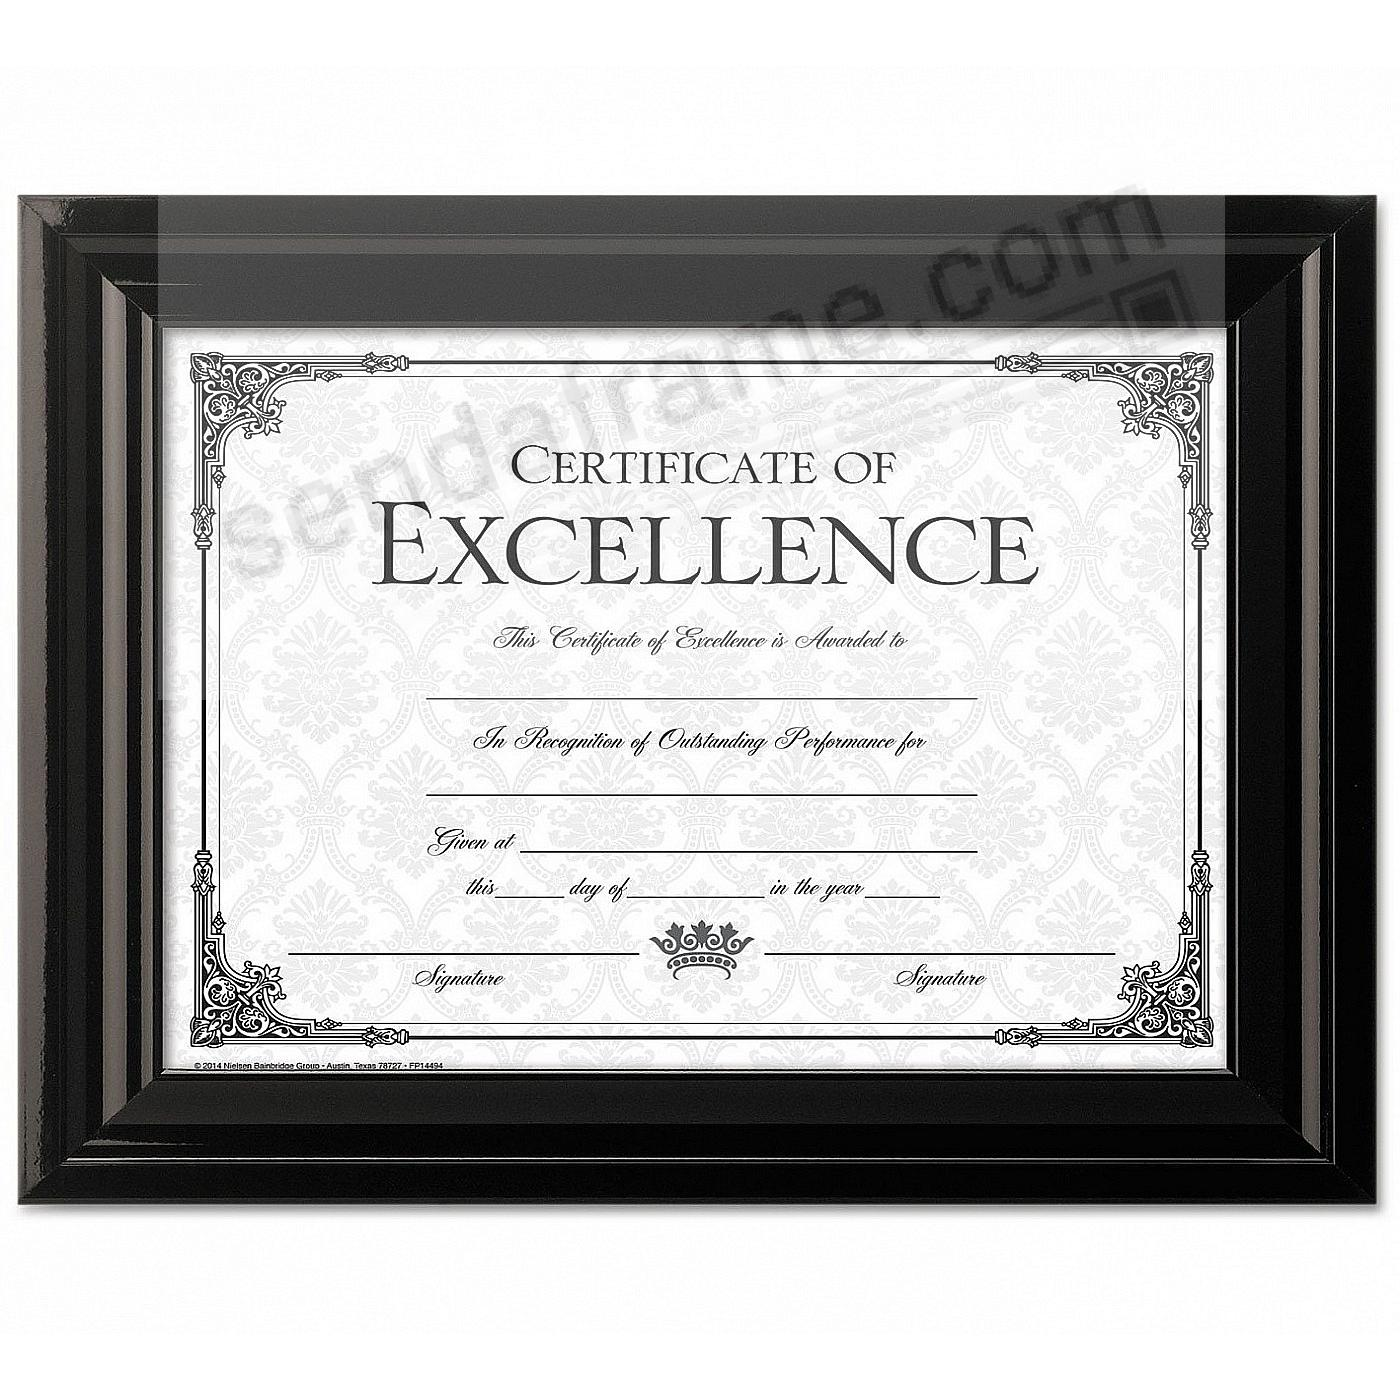 High-Gloss Black Double-Bevel Certificate frame by DAX®